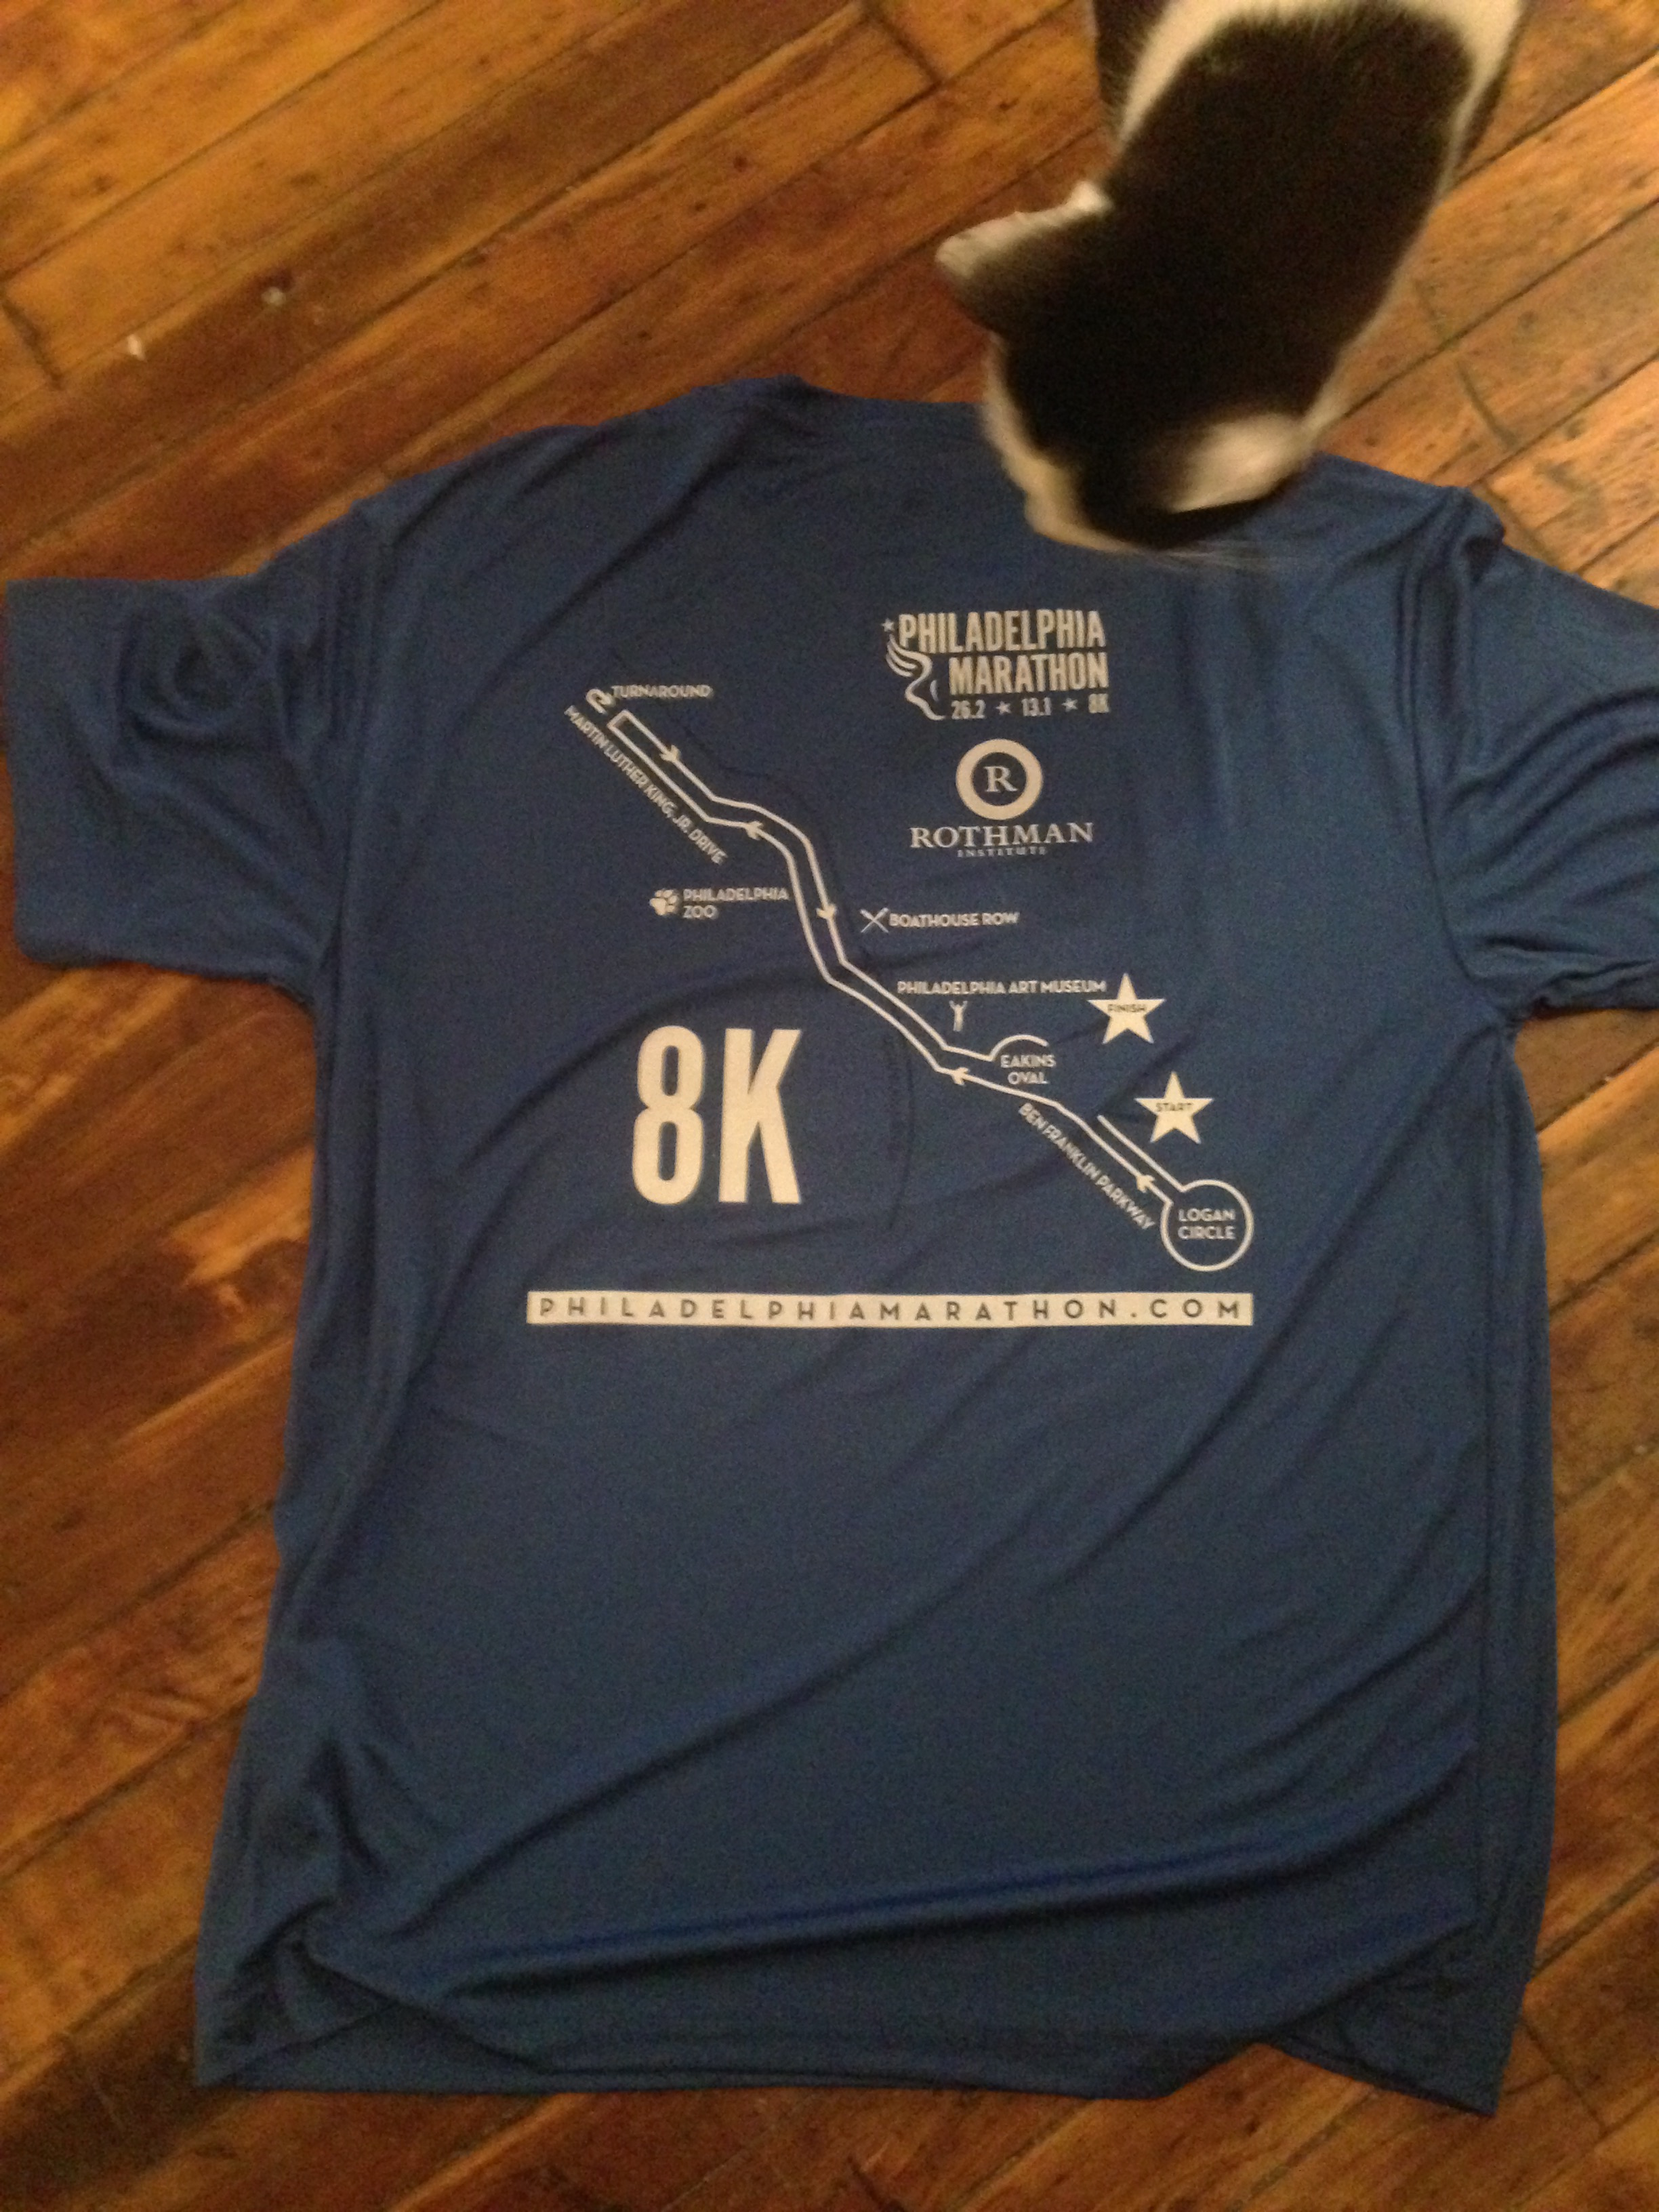 Diego checks out the back of the Rothman 8K shirt.  Nice memento, having the course map on the shirt.